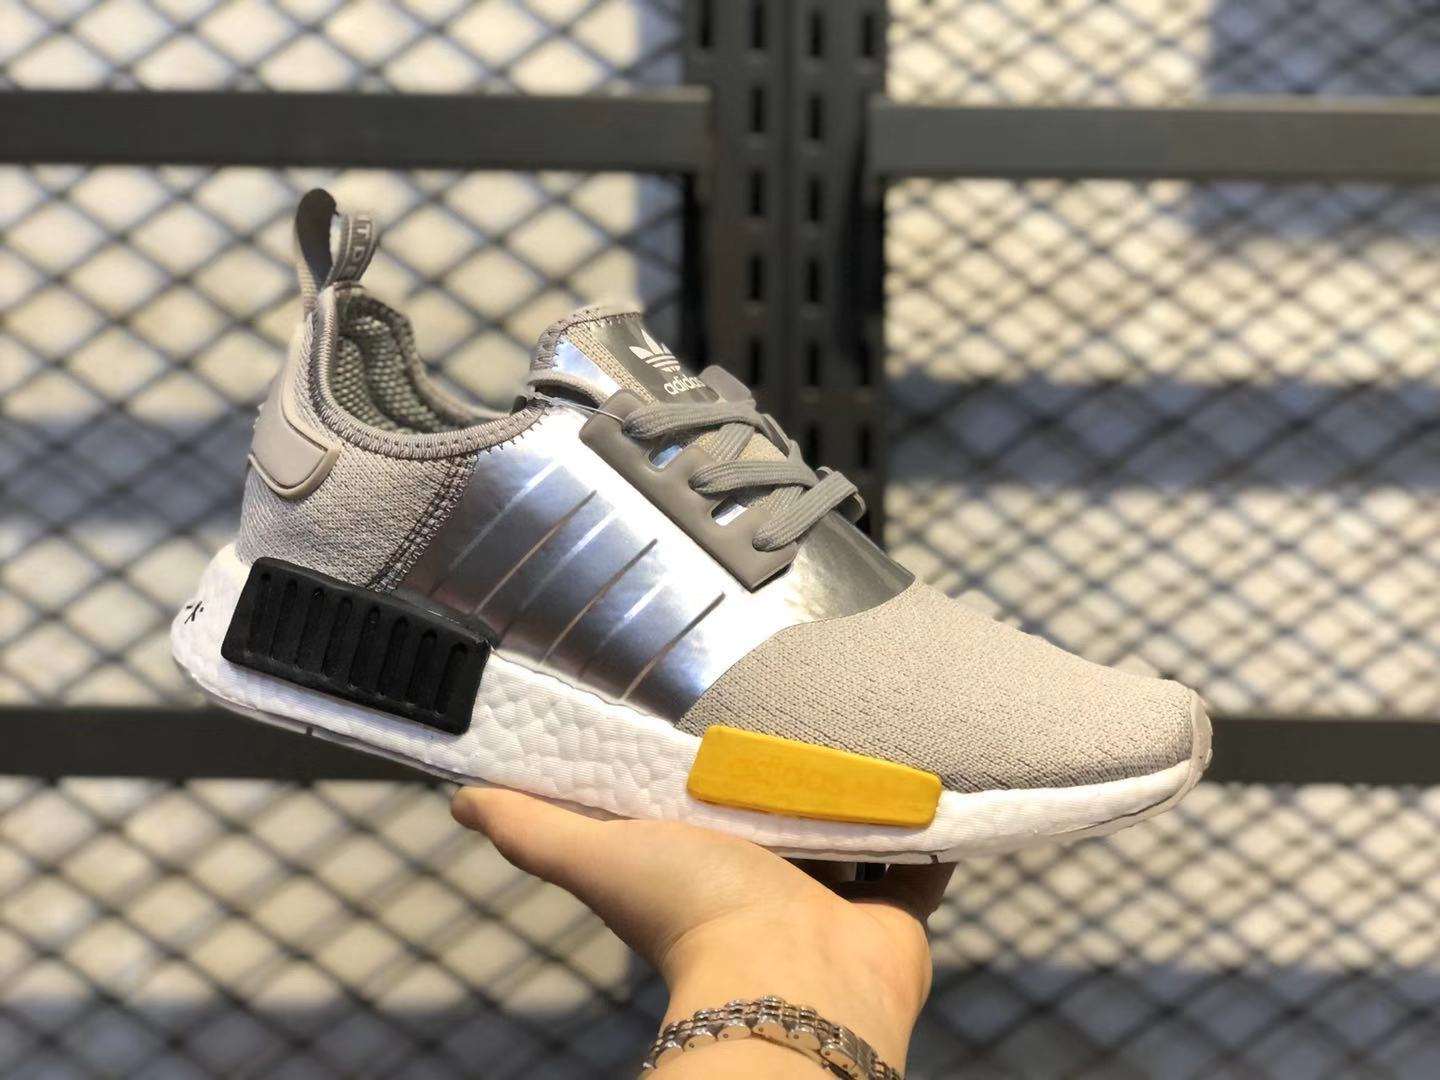 Adidas NMD R1 Metal Grey/Yellow-Core Black Running Shoes Cheap Price EF4261